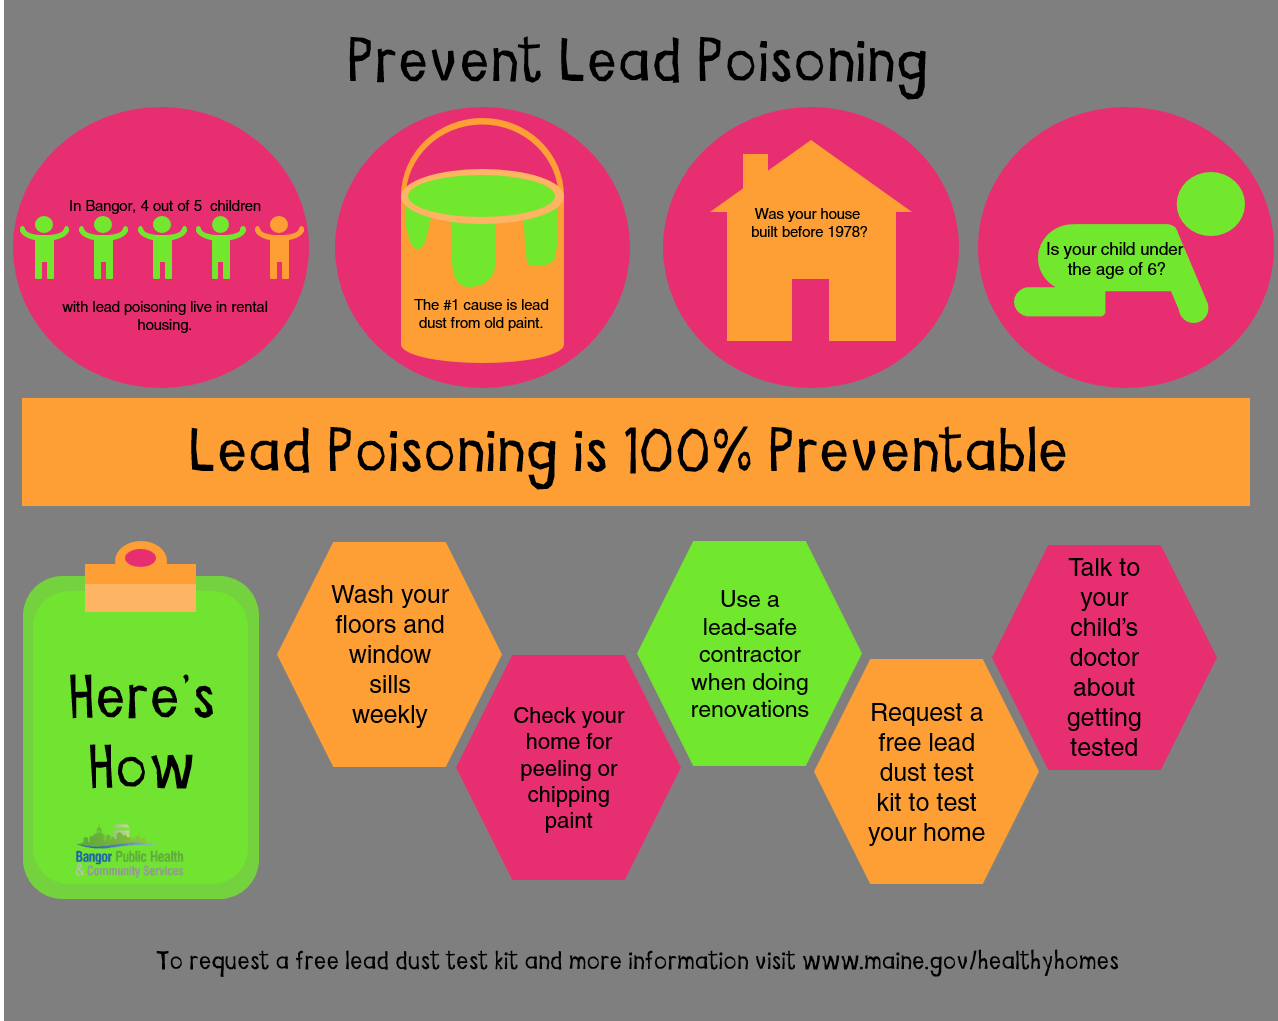 household safety preventing poisoning for parents - 999×798